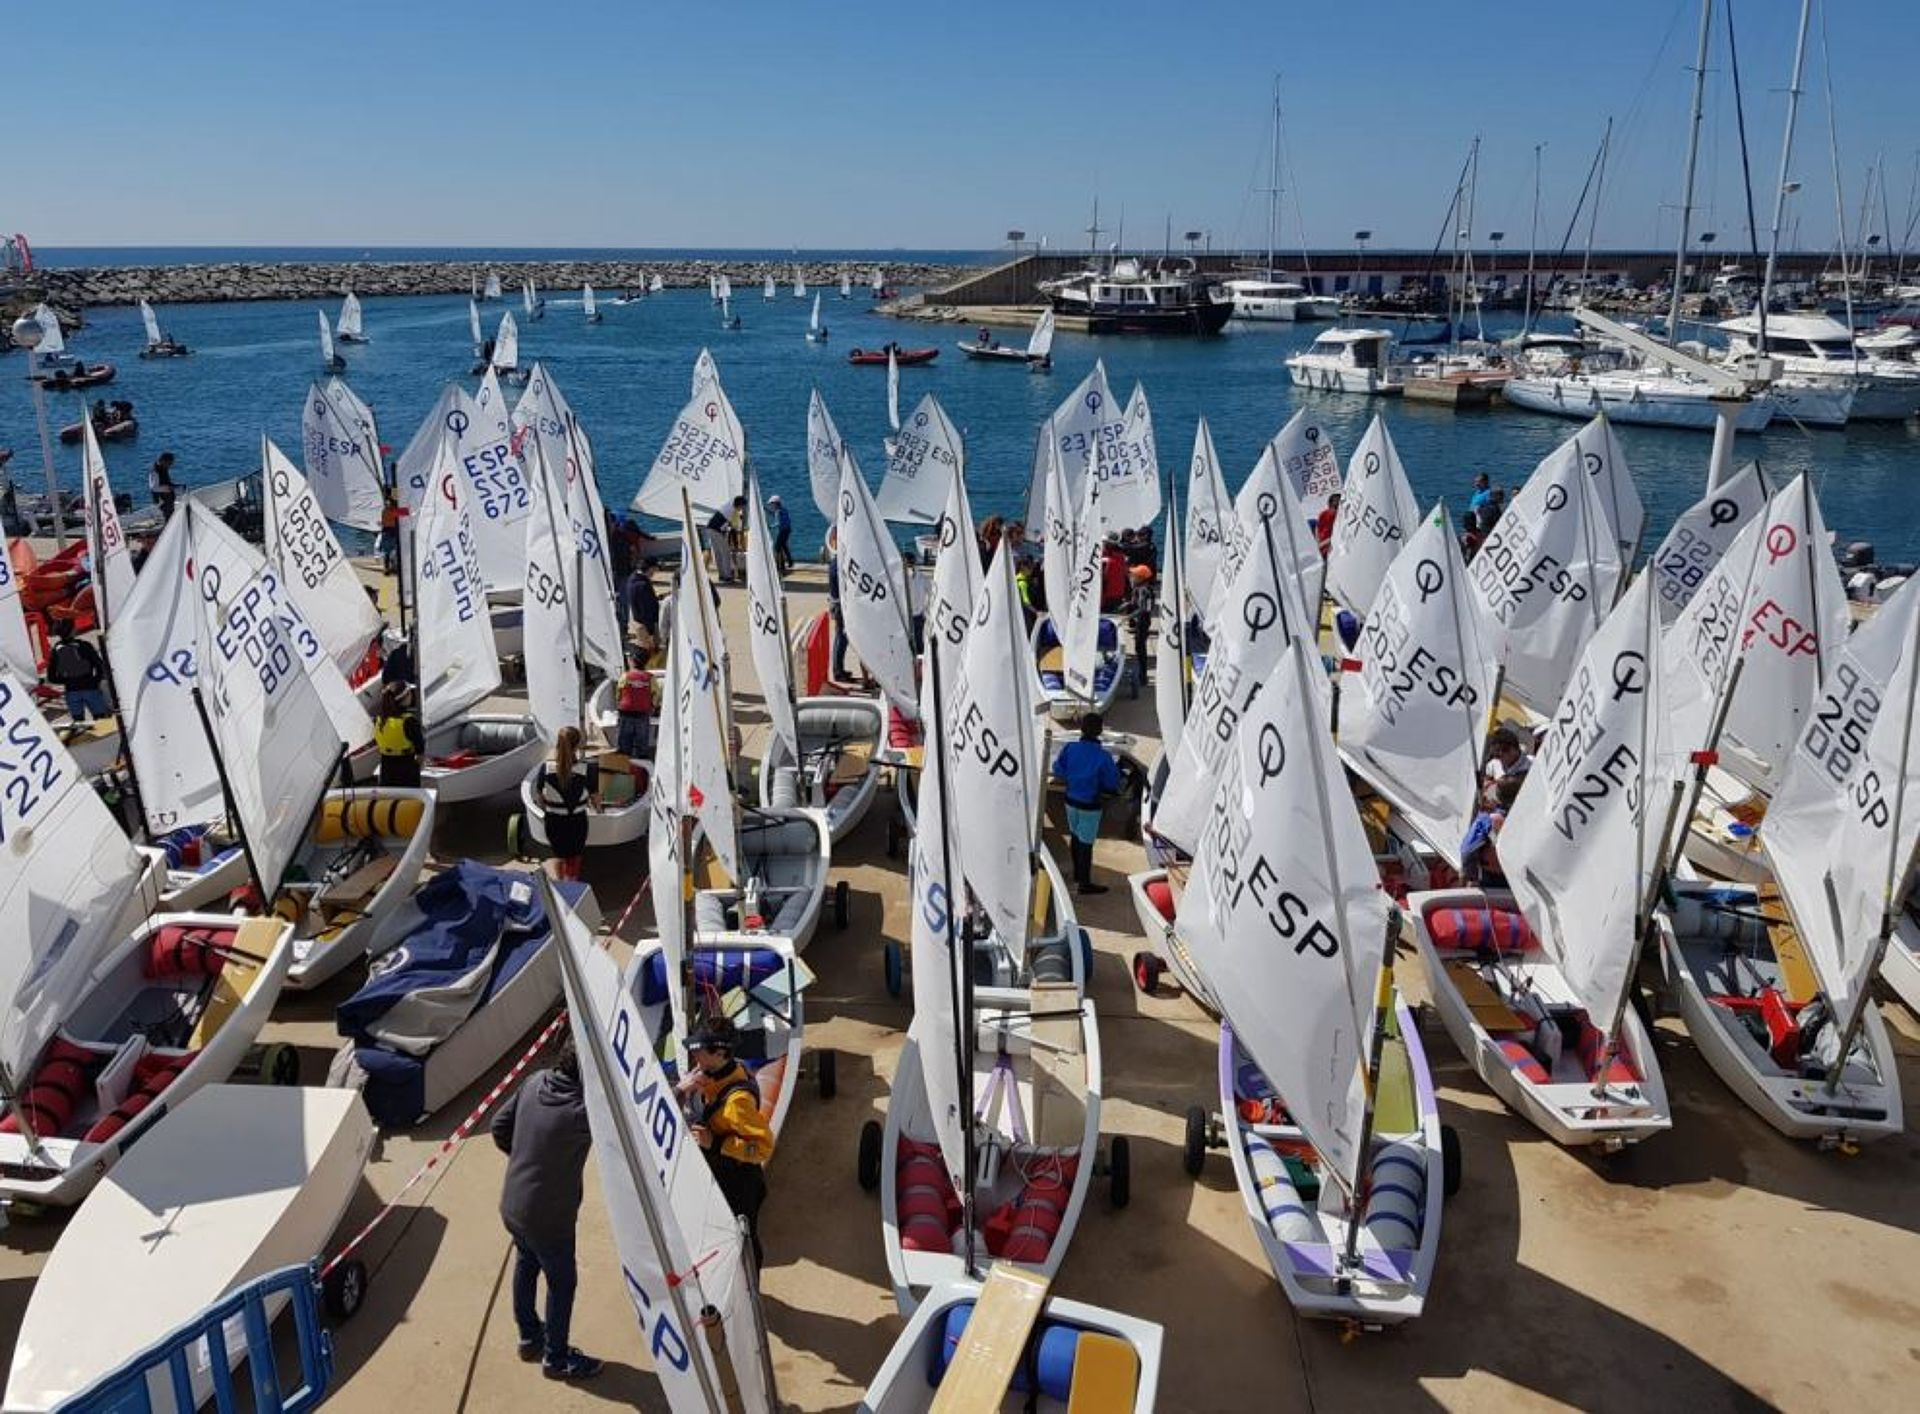 Participation of the Blanes team: Manresa, Piguillem and Gragera at the Optimist Championship of Catalonia.